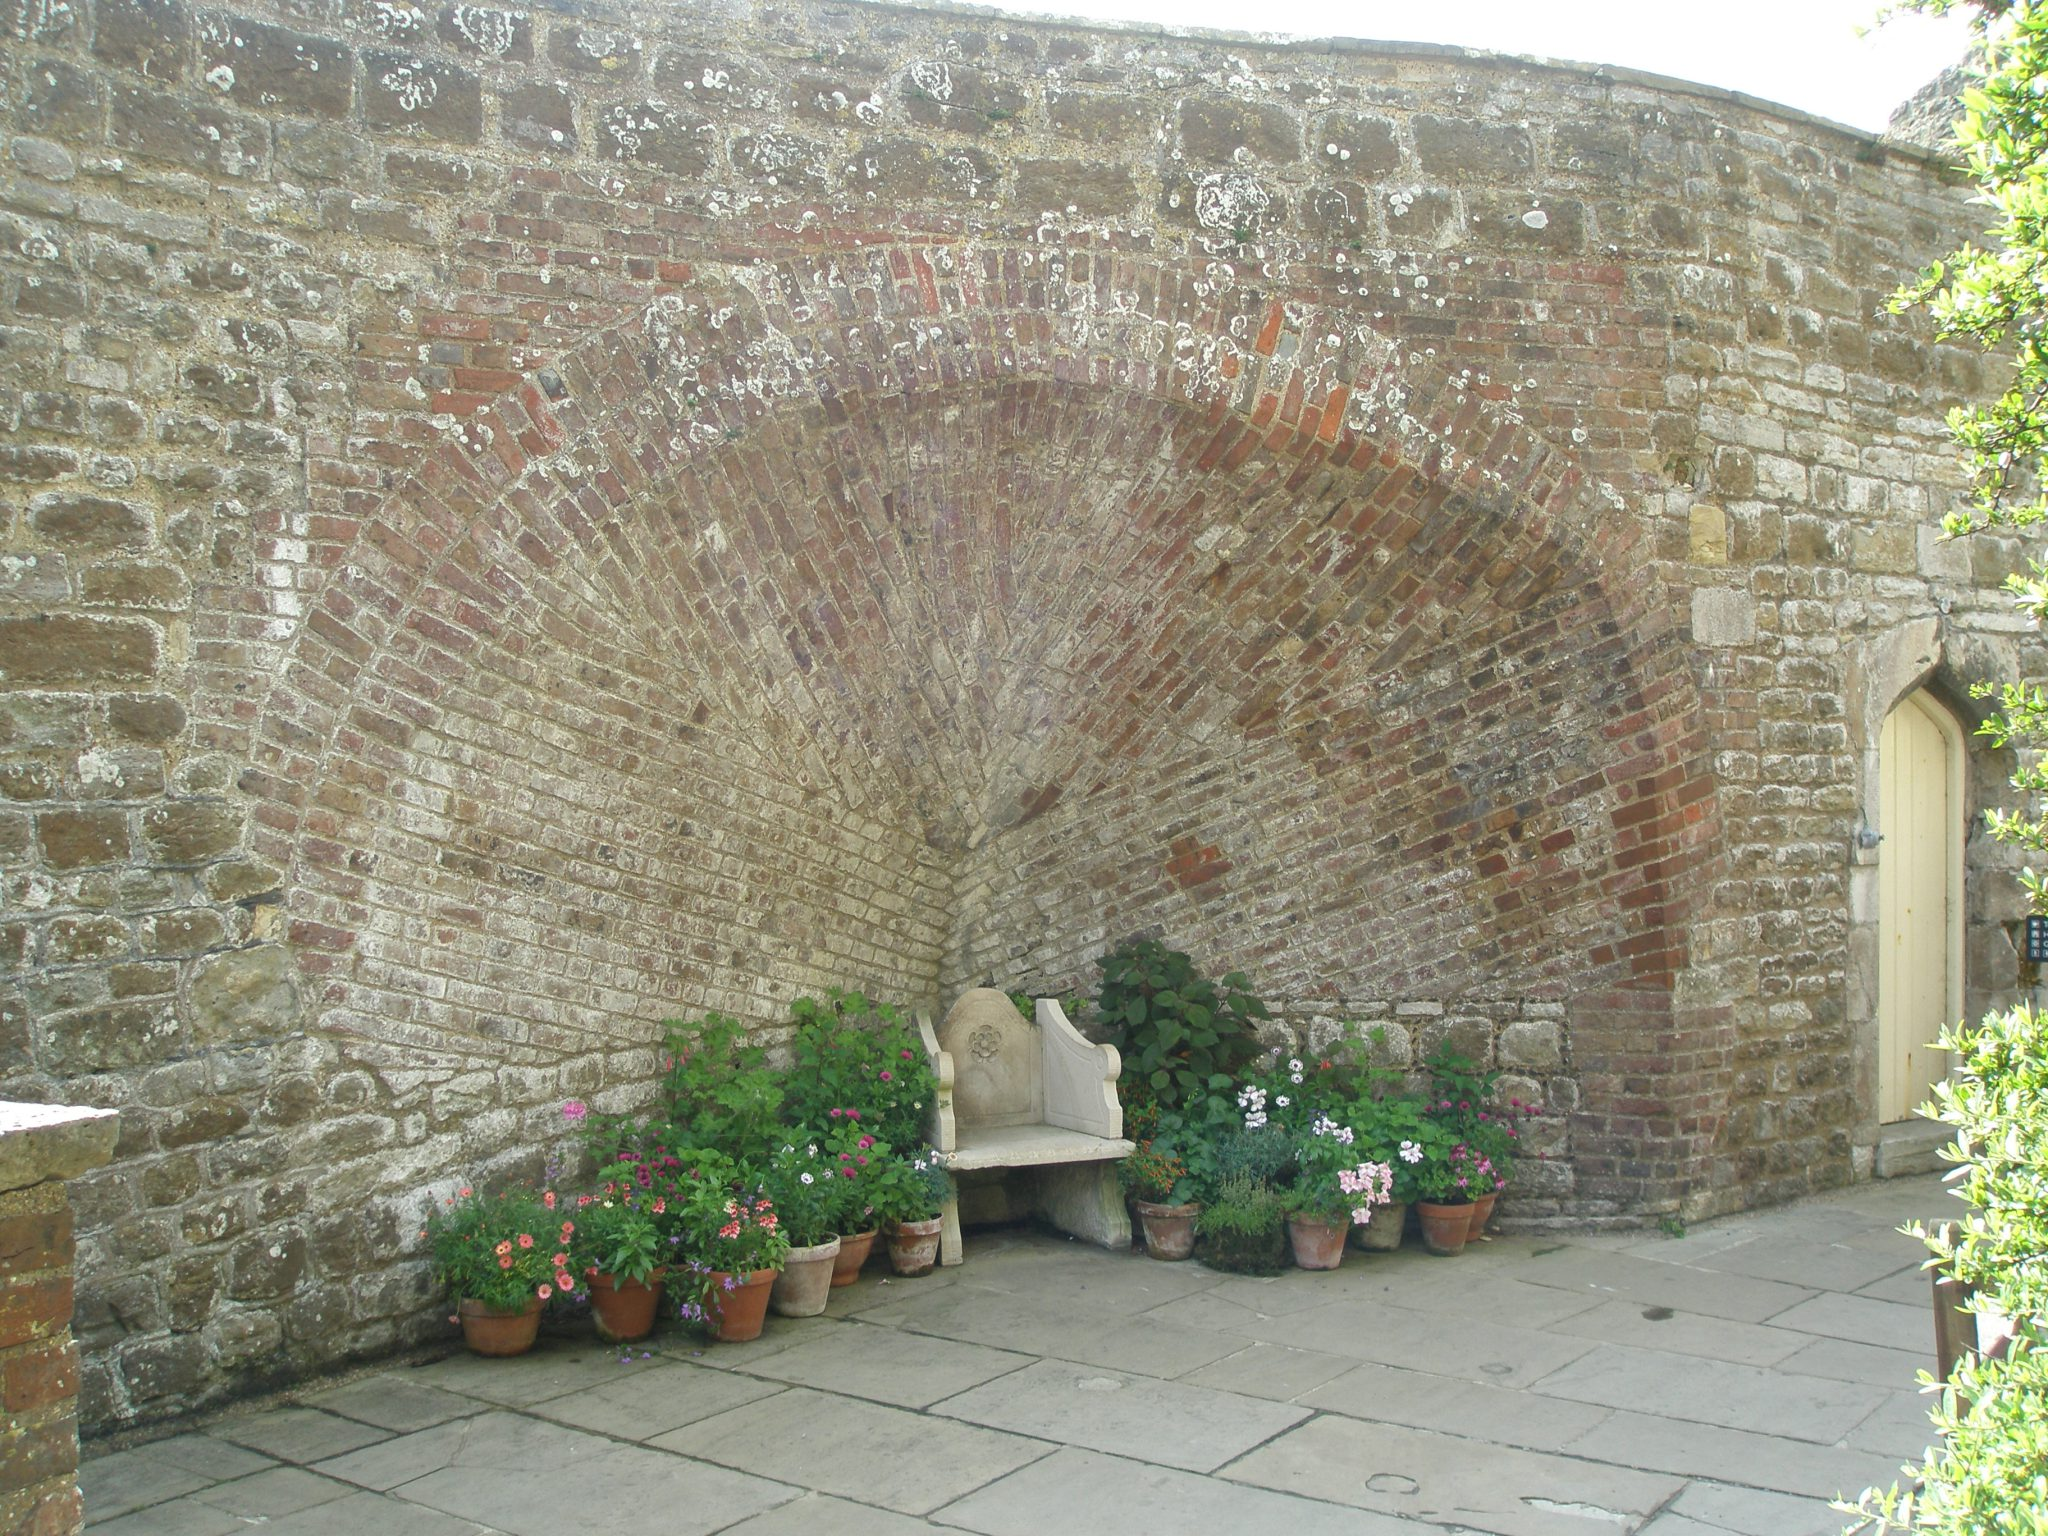 After passing the the Gate House, we were presented with this spectacular demonstration of the Bricklayer's Art: an alcove in the open courtyard that's within the concentric curtain wall of the Castle.